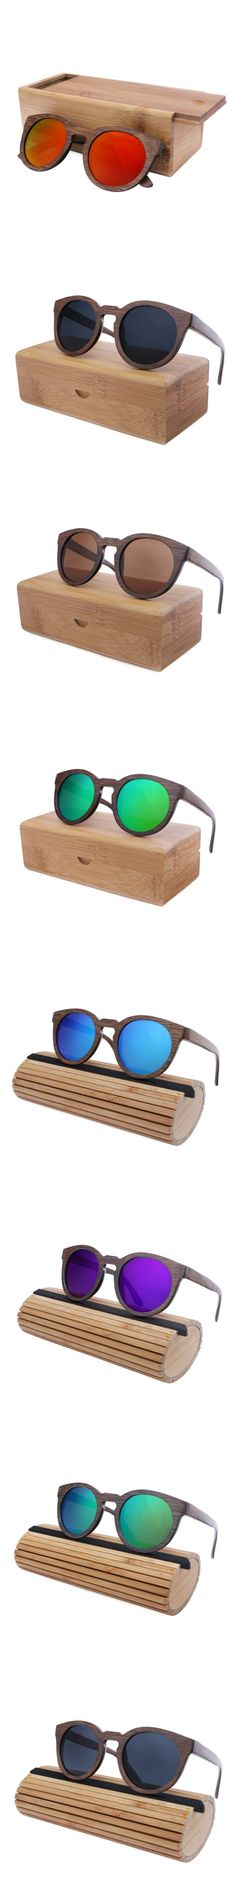 2016 Trends Bamboo Wooden Sunglasses With Polarized Lens | Weird Deck